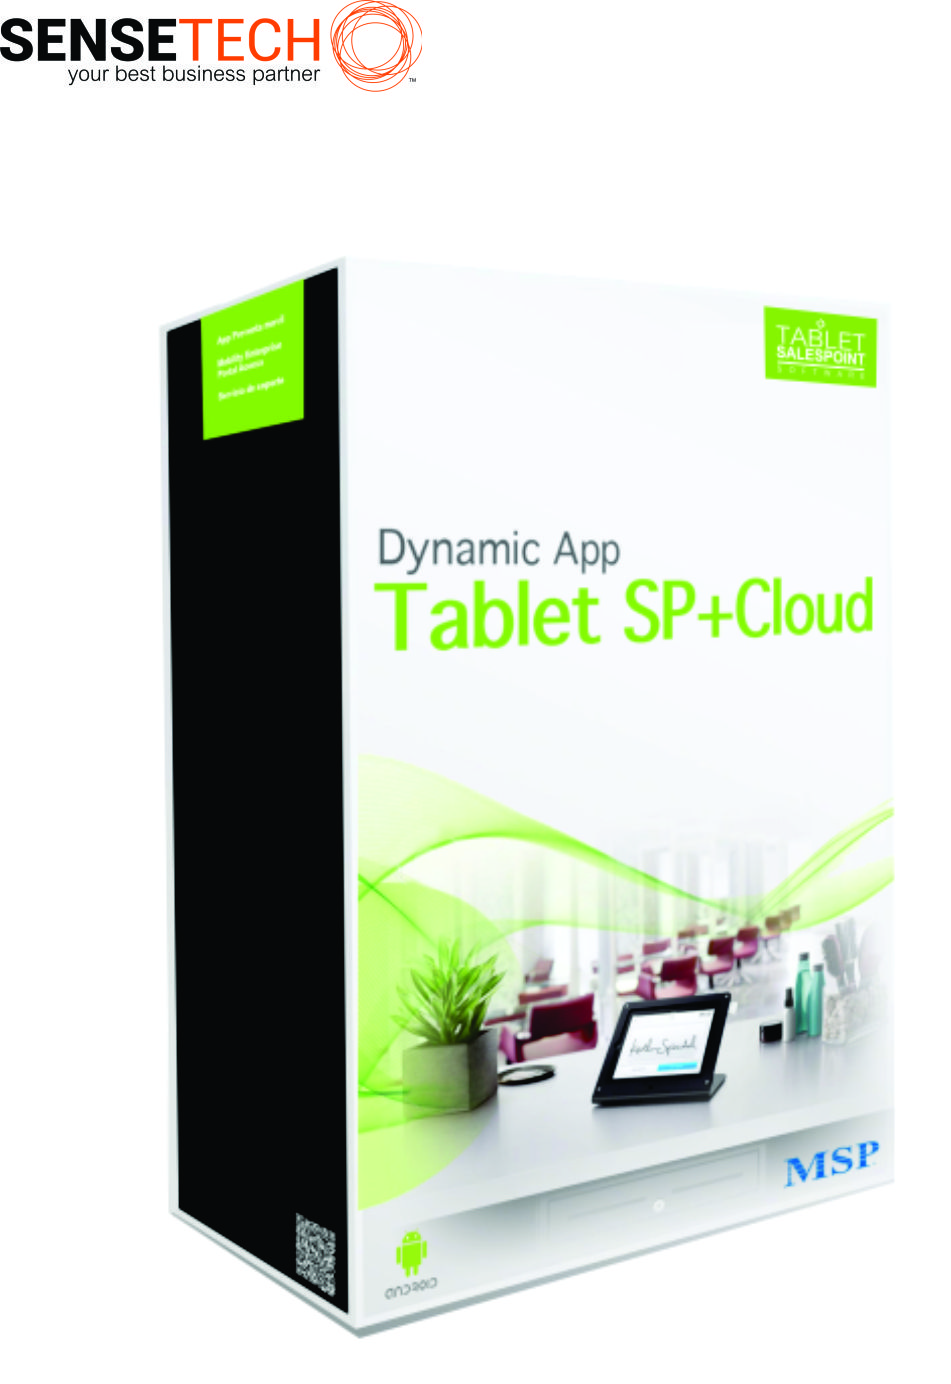 Punto de venta App Tablet SP Cloud